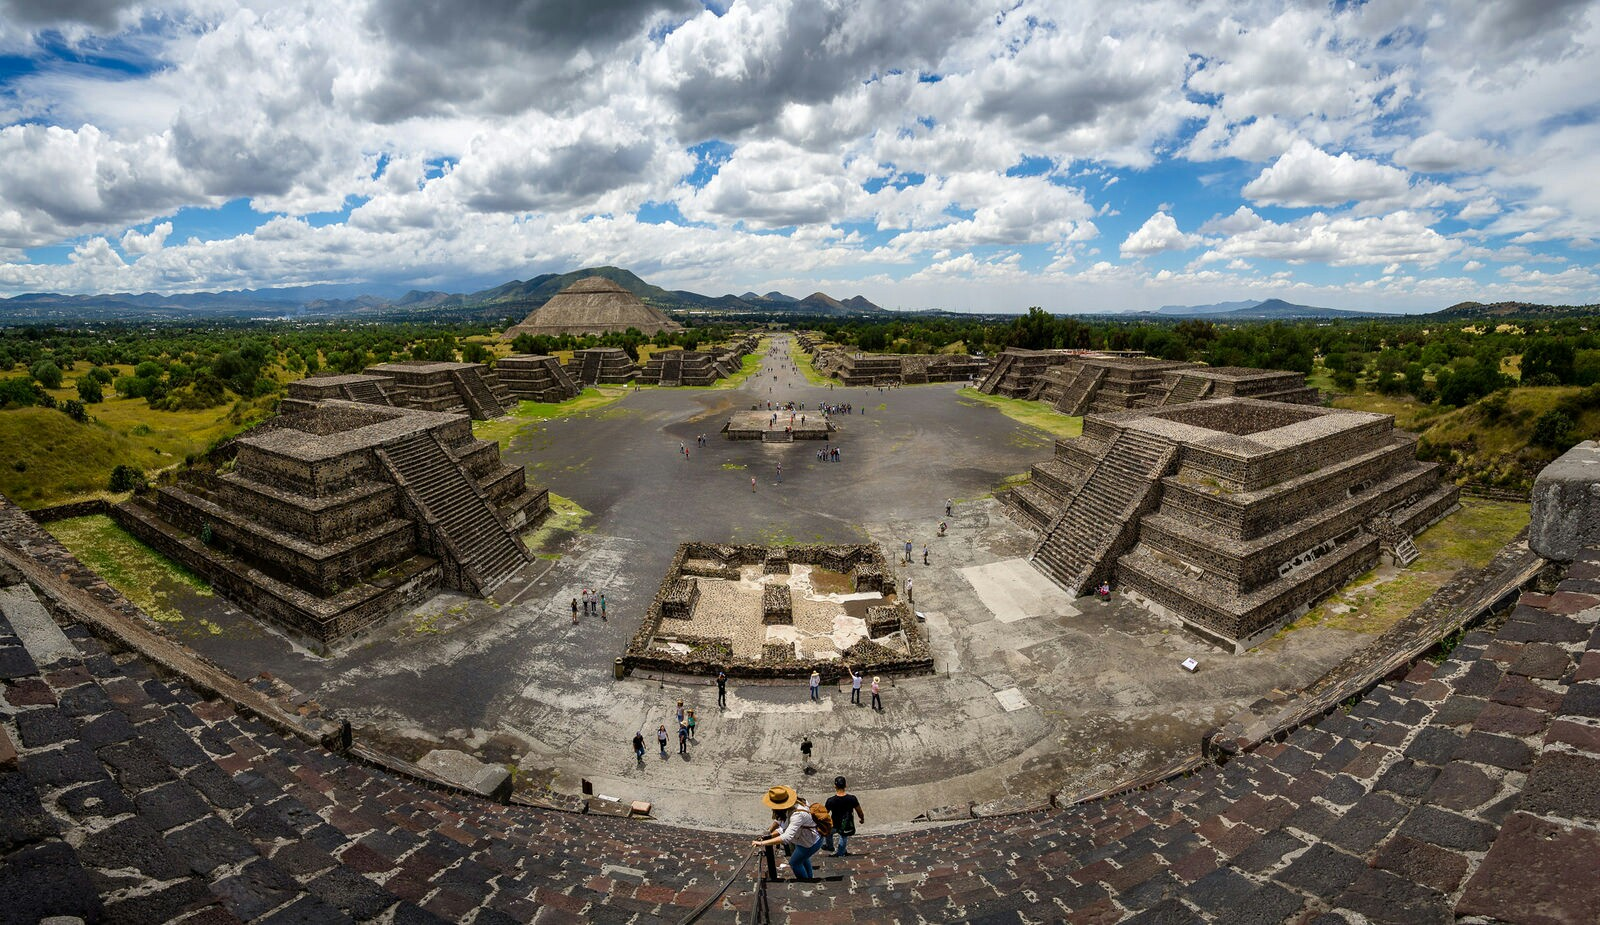 Climbing the Pyramids of Teotihuacan is an awesome thing to do in Mexico City